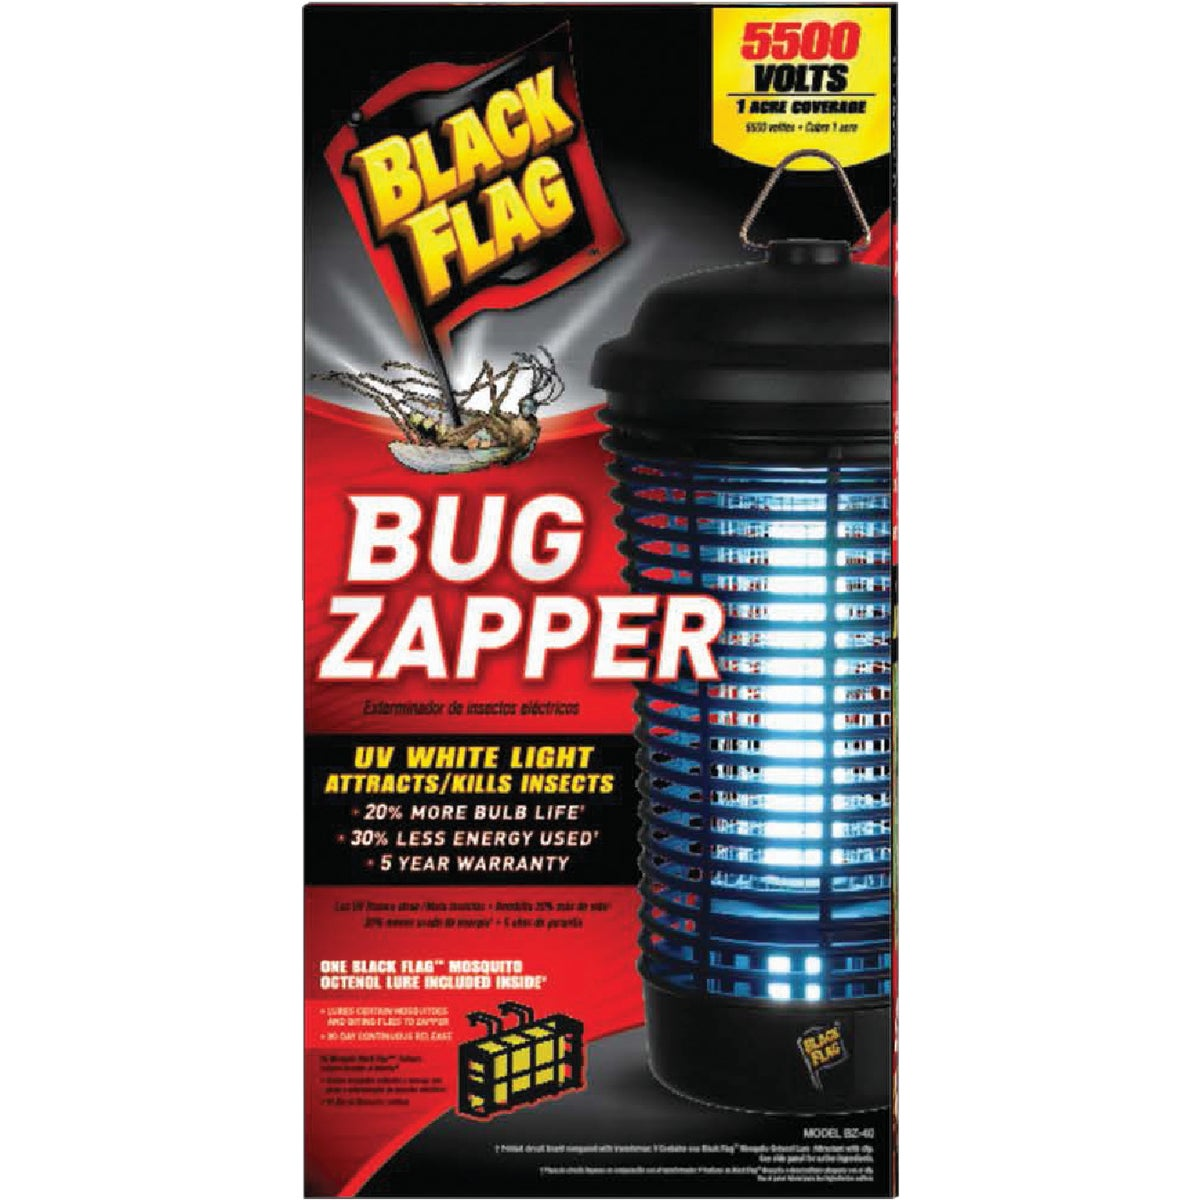 1 ACRE INSECT KILLER - BK100 by Kaz